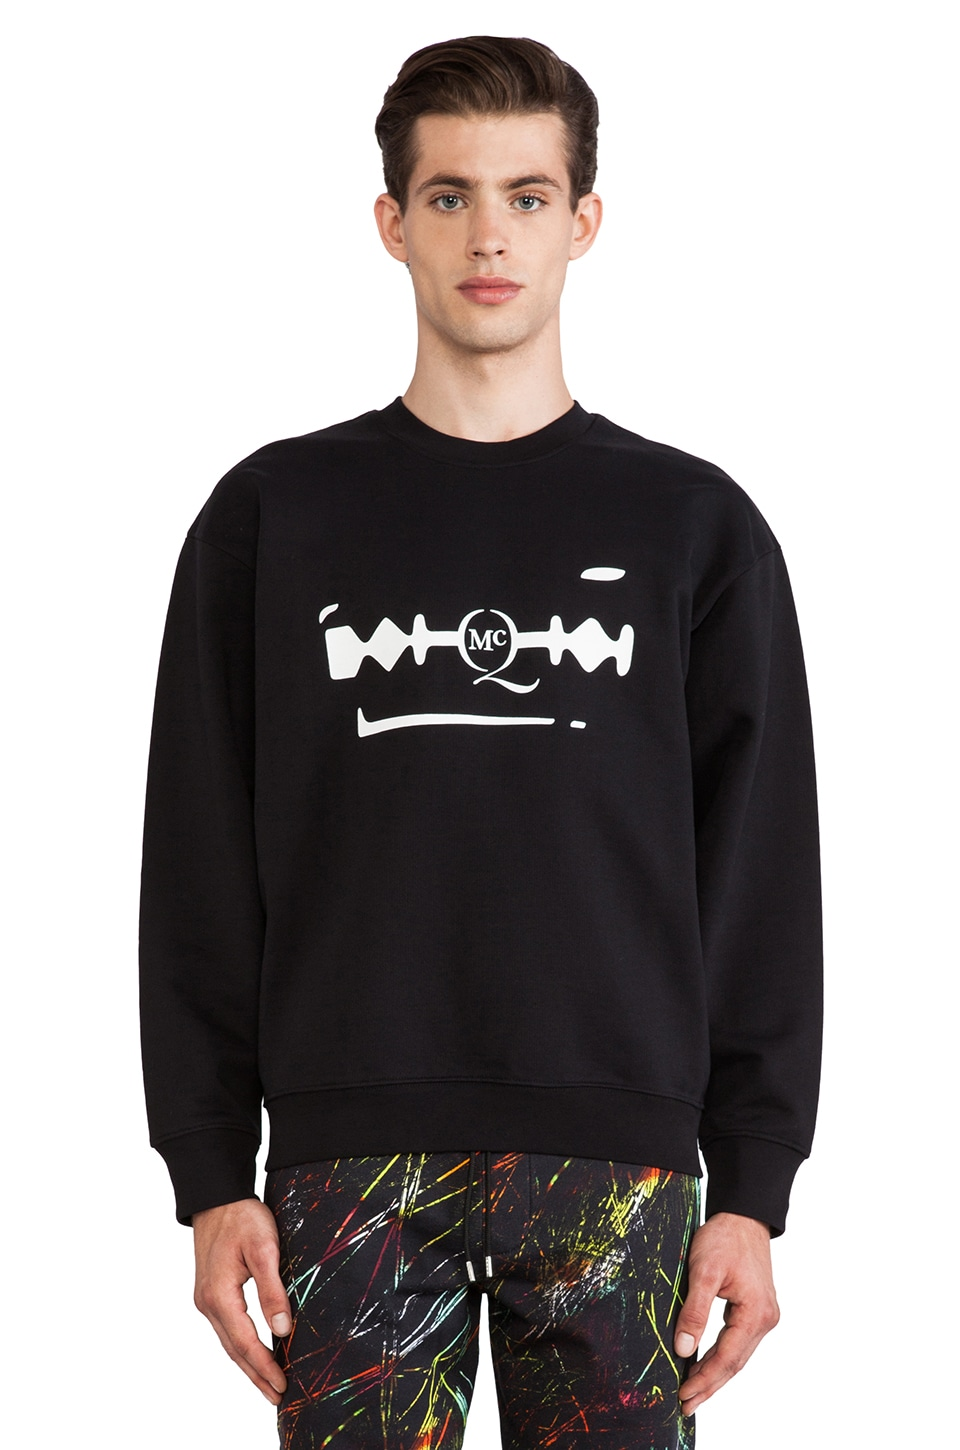 McQ Alexander McQueen Oversized Sweatshirt in Darkest Black